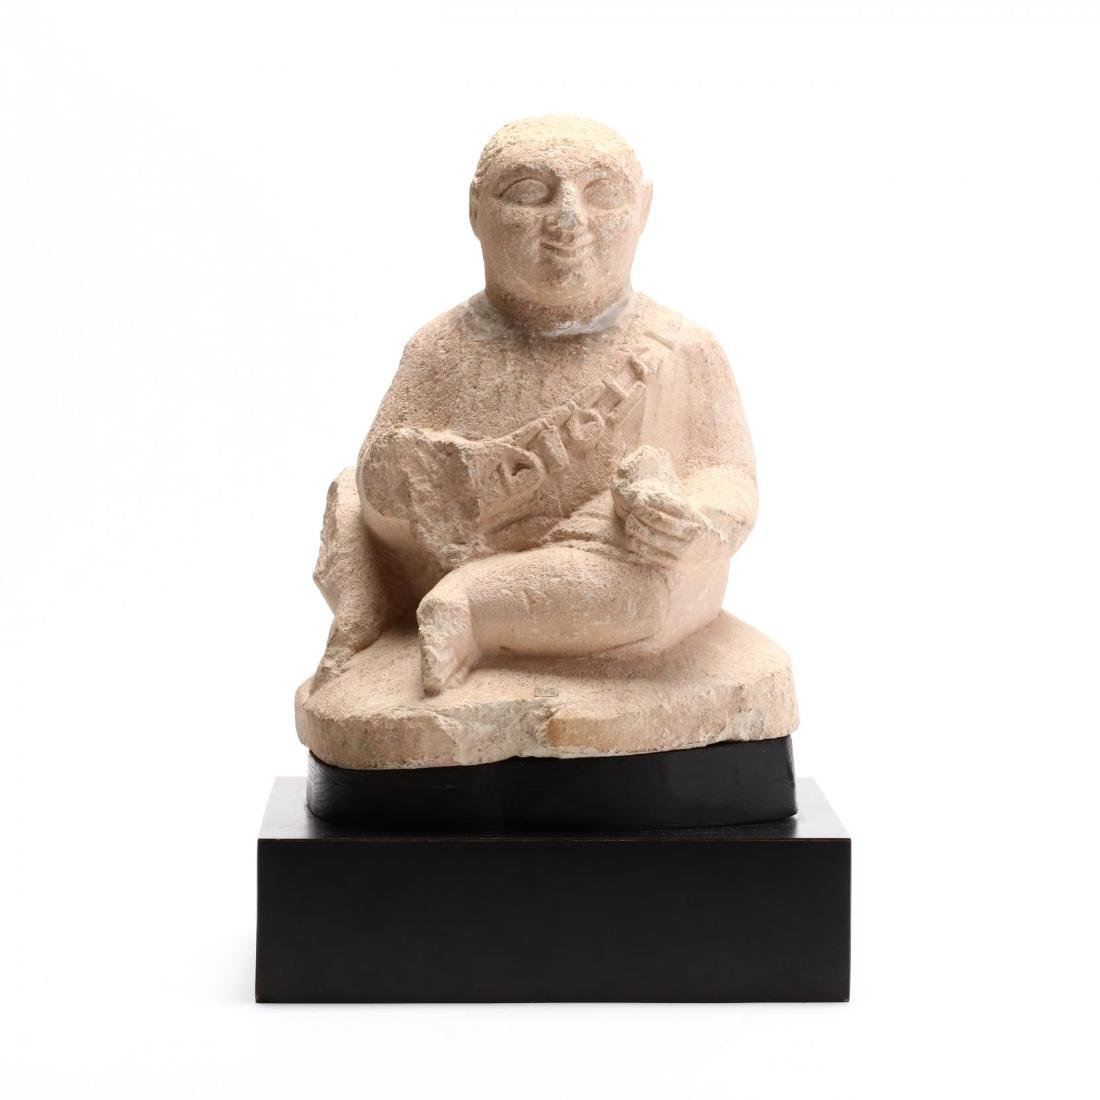 Cypriot Seated Limestone Figure, Ex. Cesnola Collection